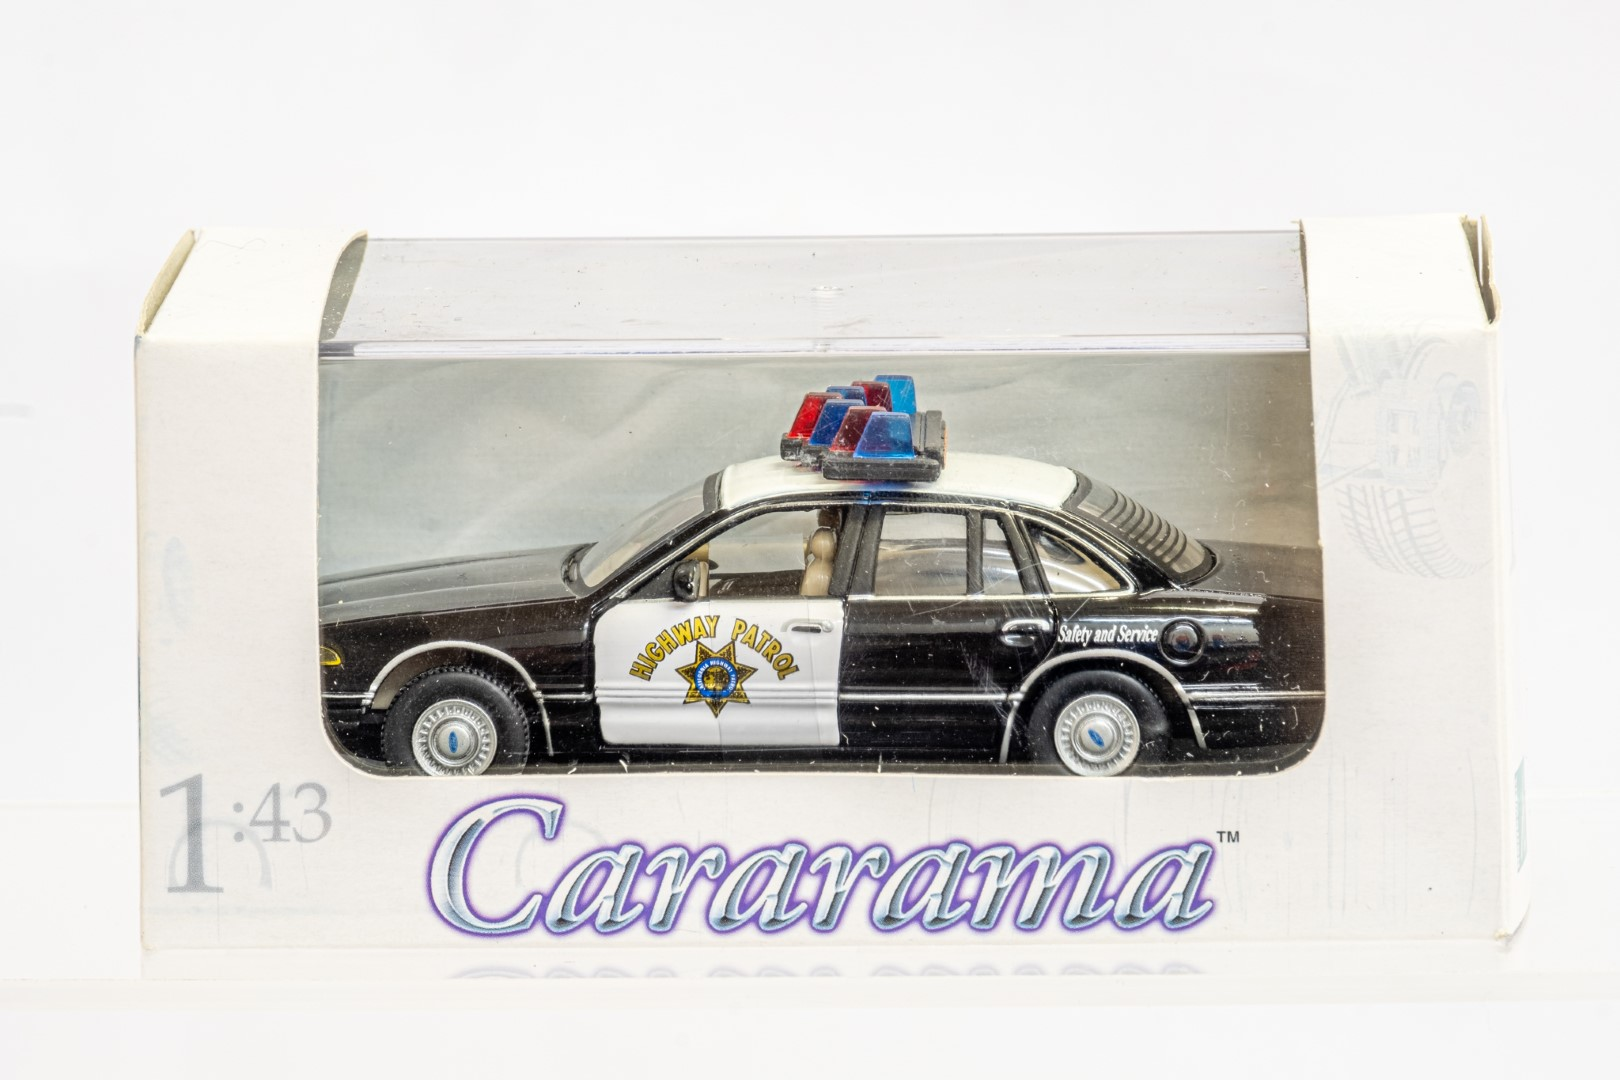 2 x American Police Cars - Image 2 of 12